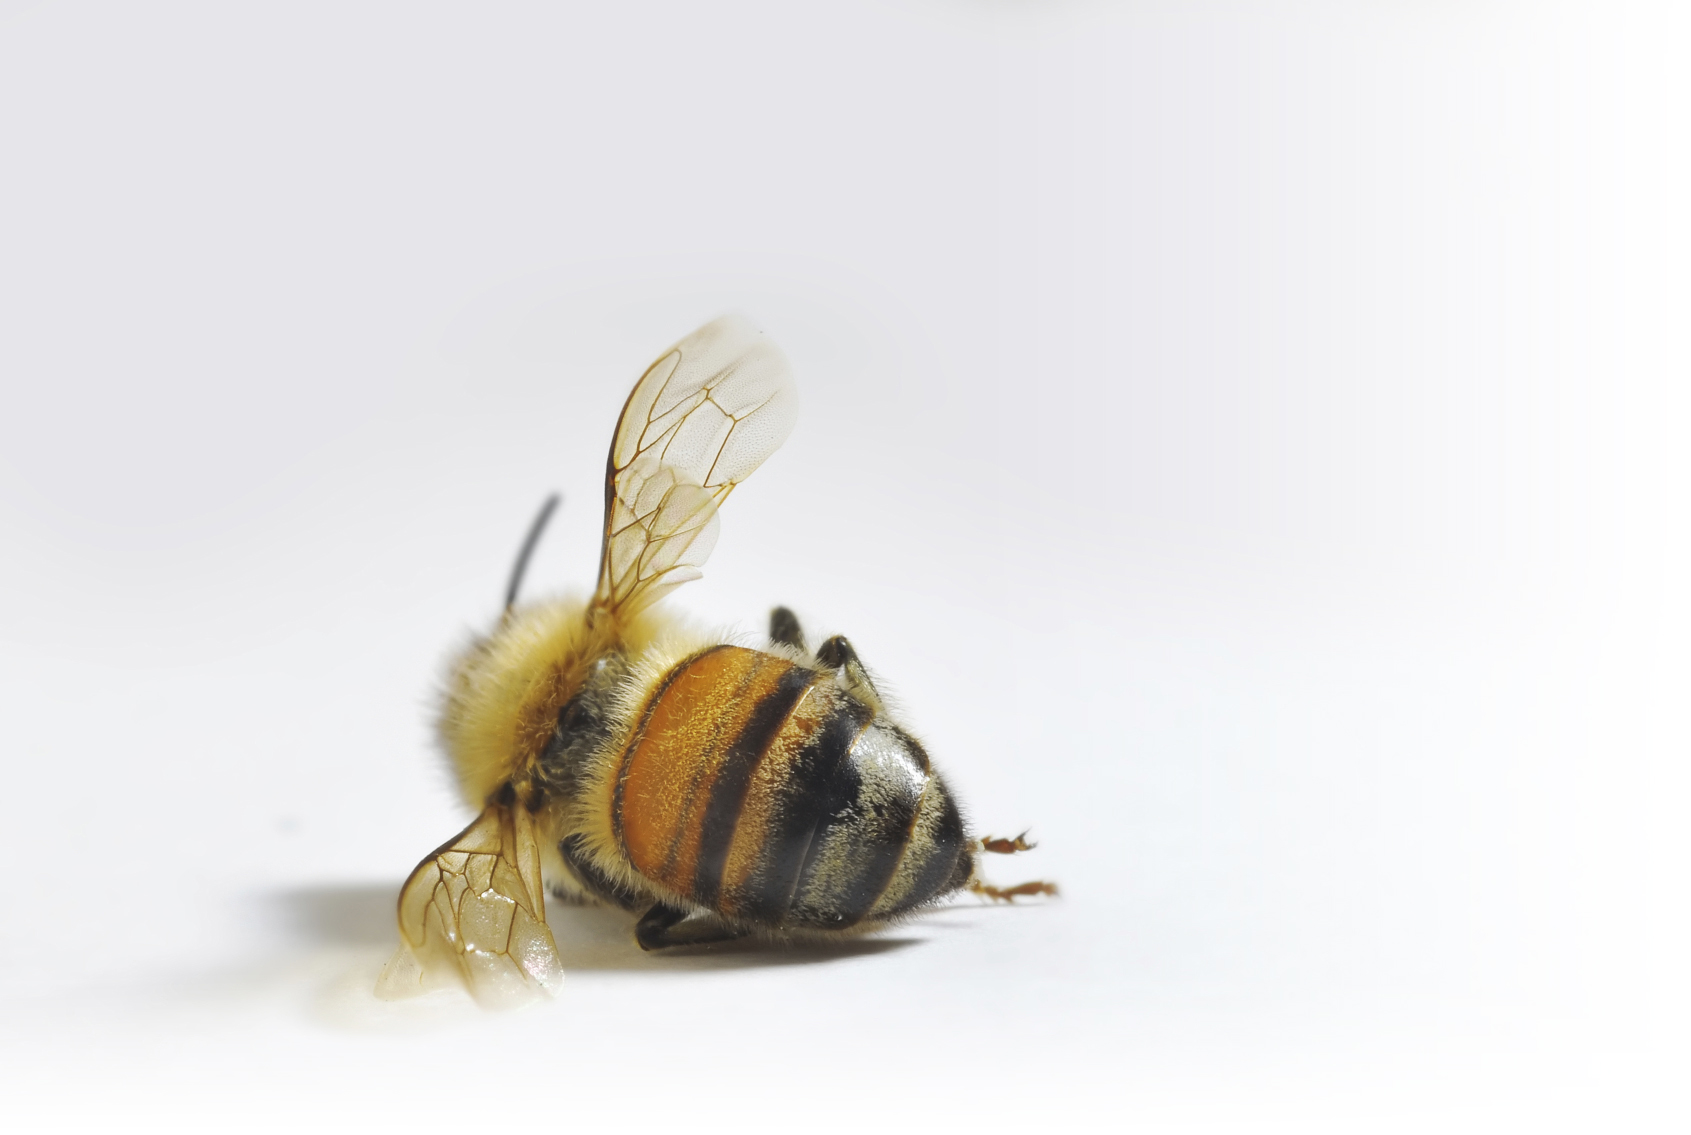 Since April 2014, Bee Population Has Declined 40% – 60%